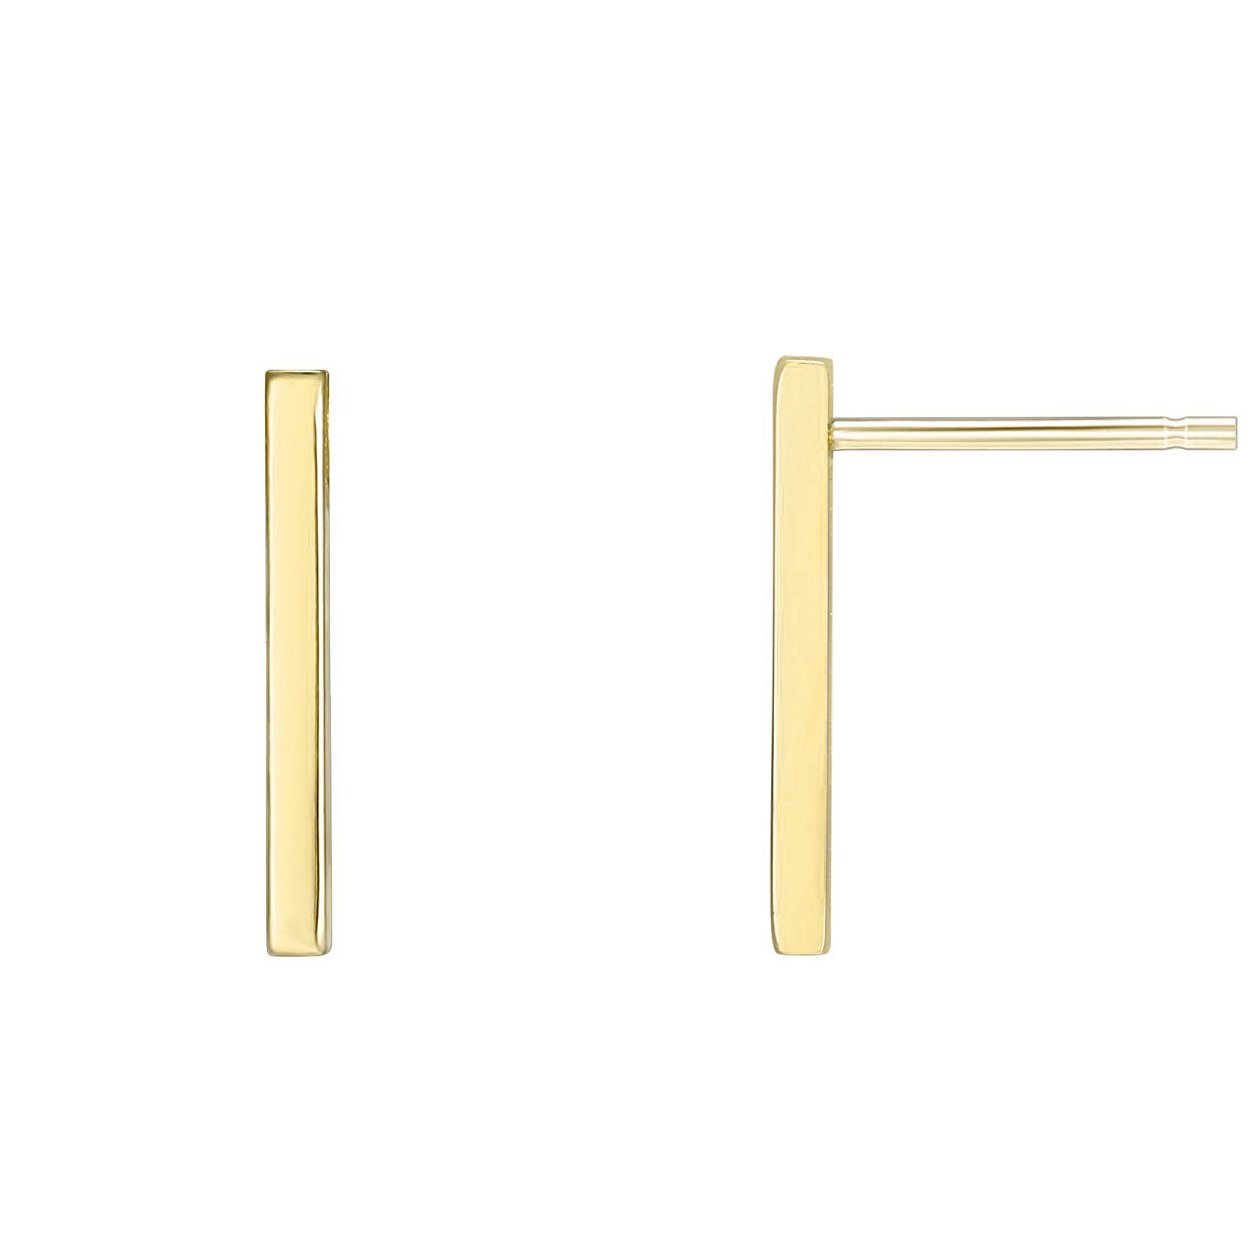 PAVOI 14K Gold Plated Dainty Mini Bar Stud Earrings - Short 5/8 Yellow Polished